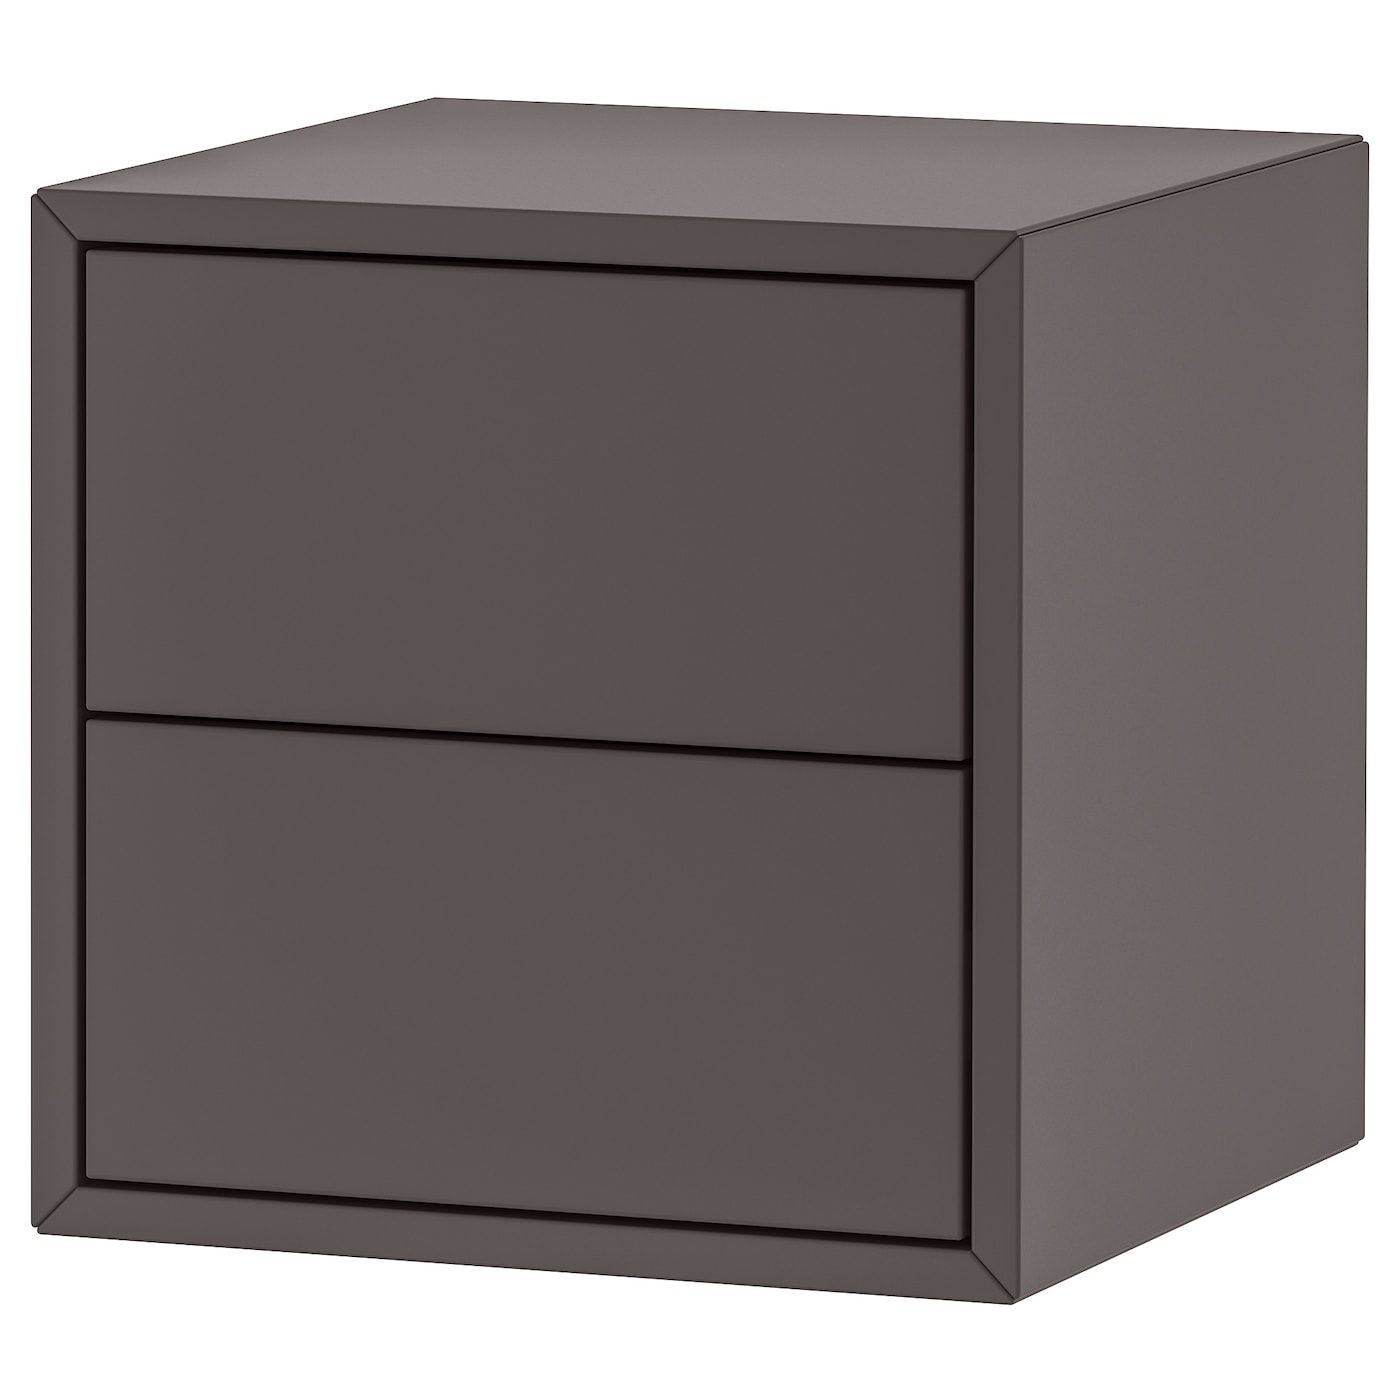 Eket Cabinet With 2 Drawers Dark Gray 13 3 4x13 3 4x13 3 4 In 2020 Mit Bildern Schubladen Wandschrank Schrank